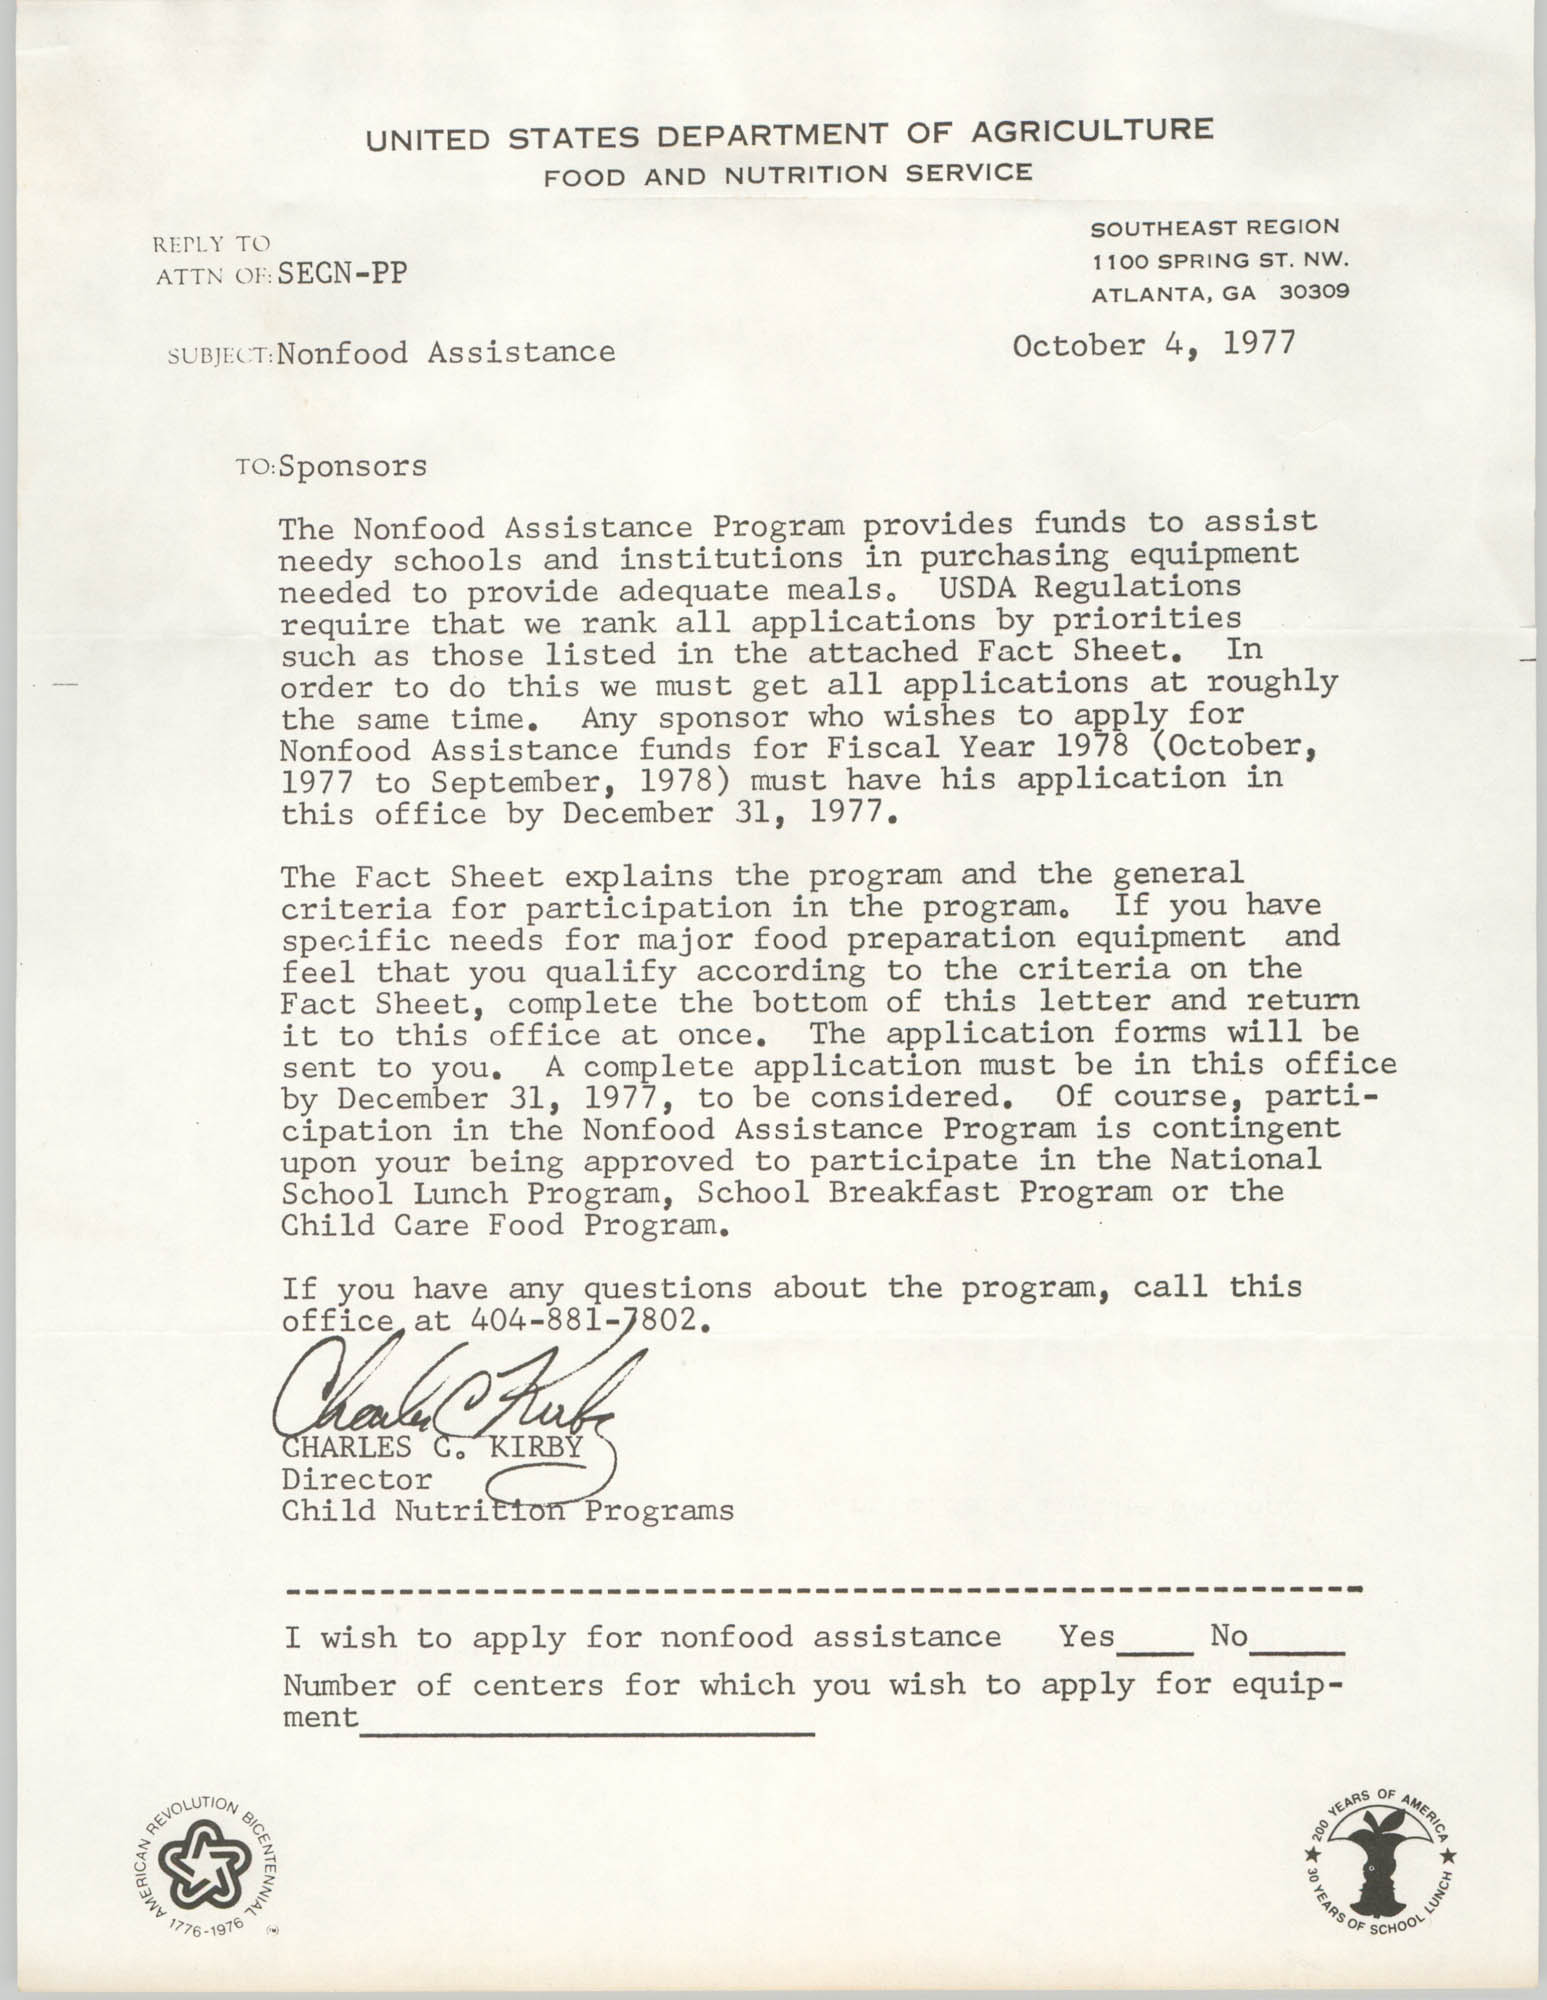 Letter from Charles C. Kirby, October 4, 1977